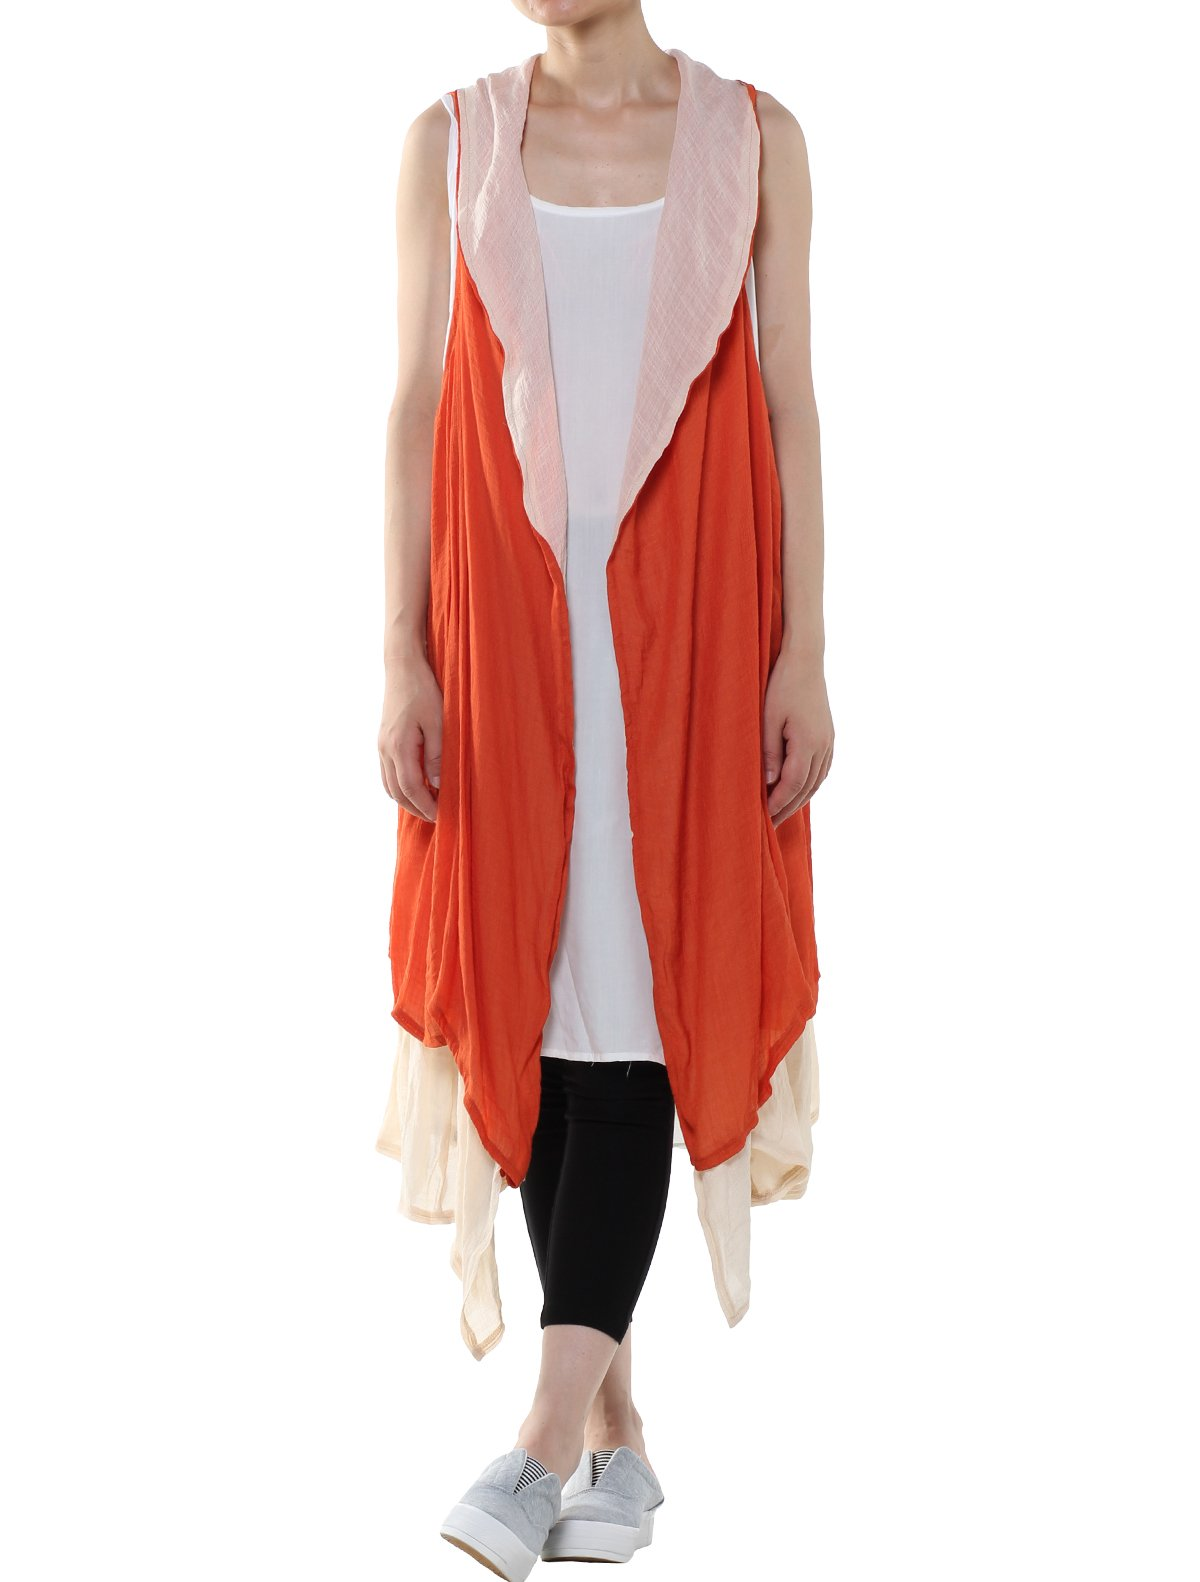 Minibee Women's Cotton Linen Cardigan Summer Thin Vest Two Side Pockets (Style 1 Orange)